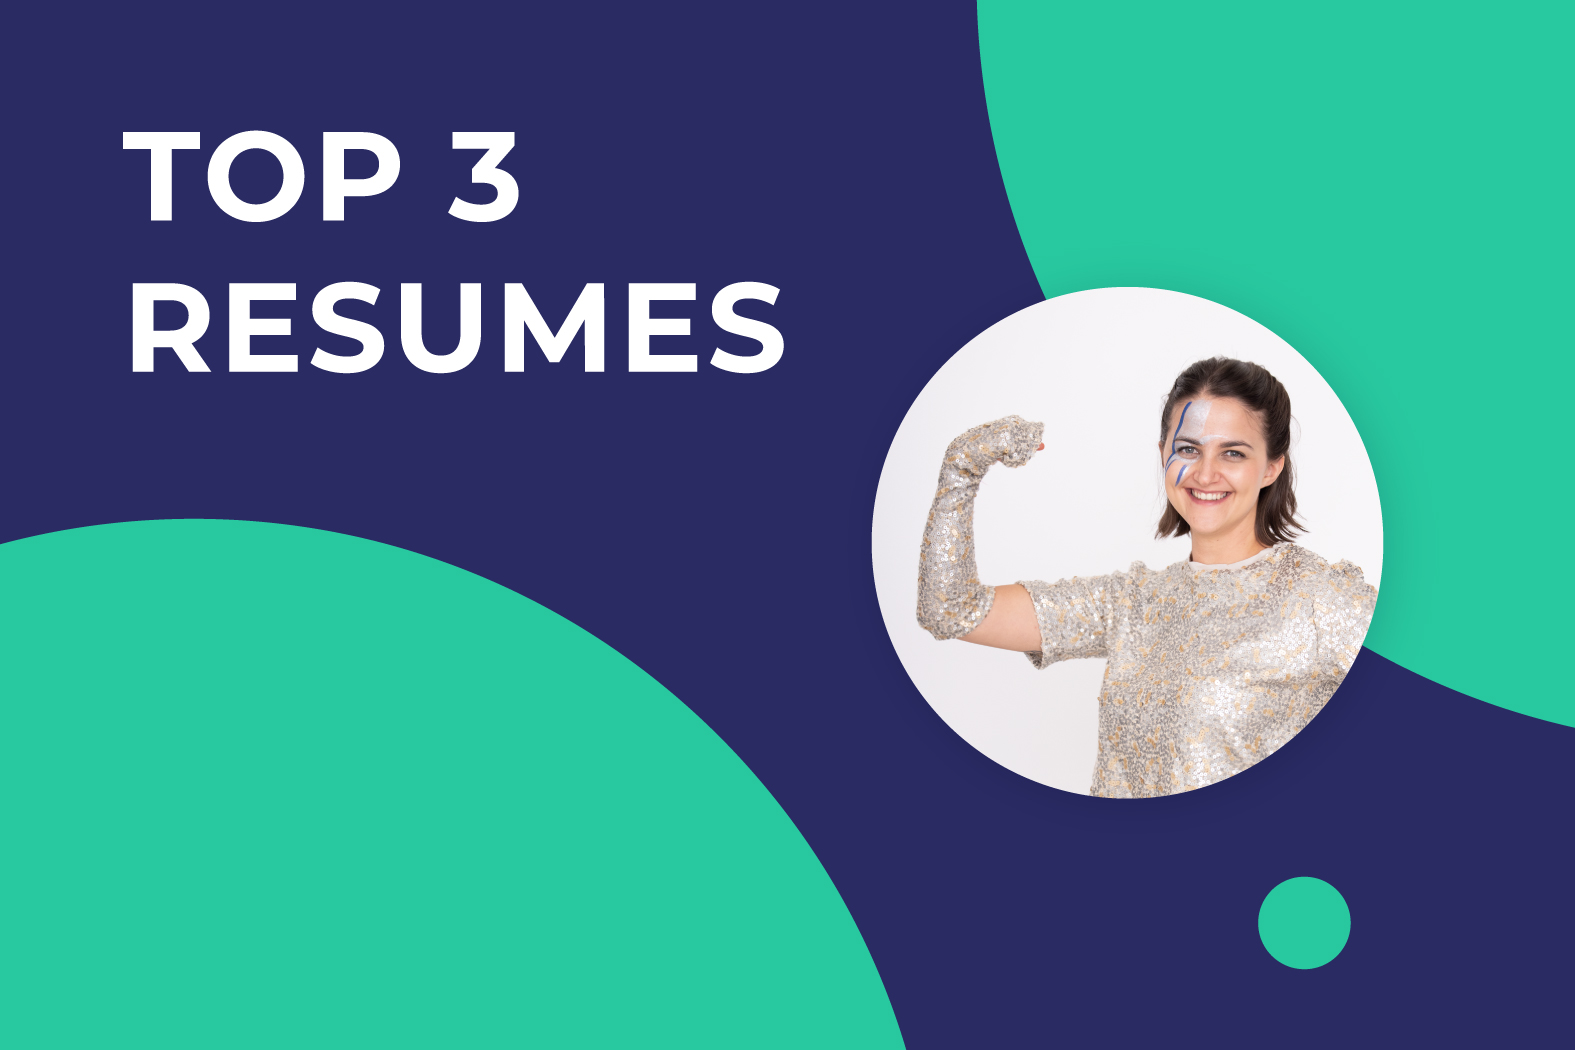 A girl is happy to find the top 3 resume templates for startups